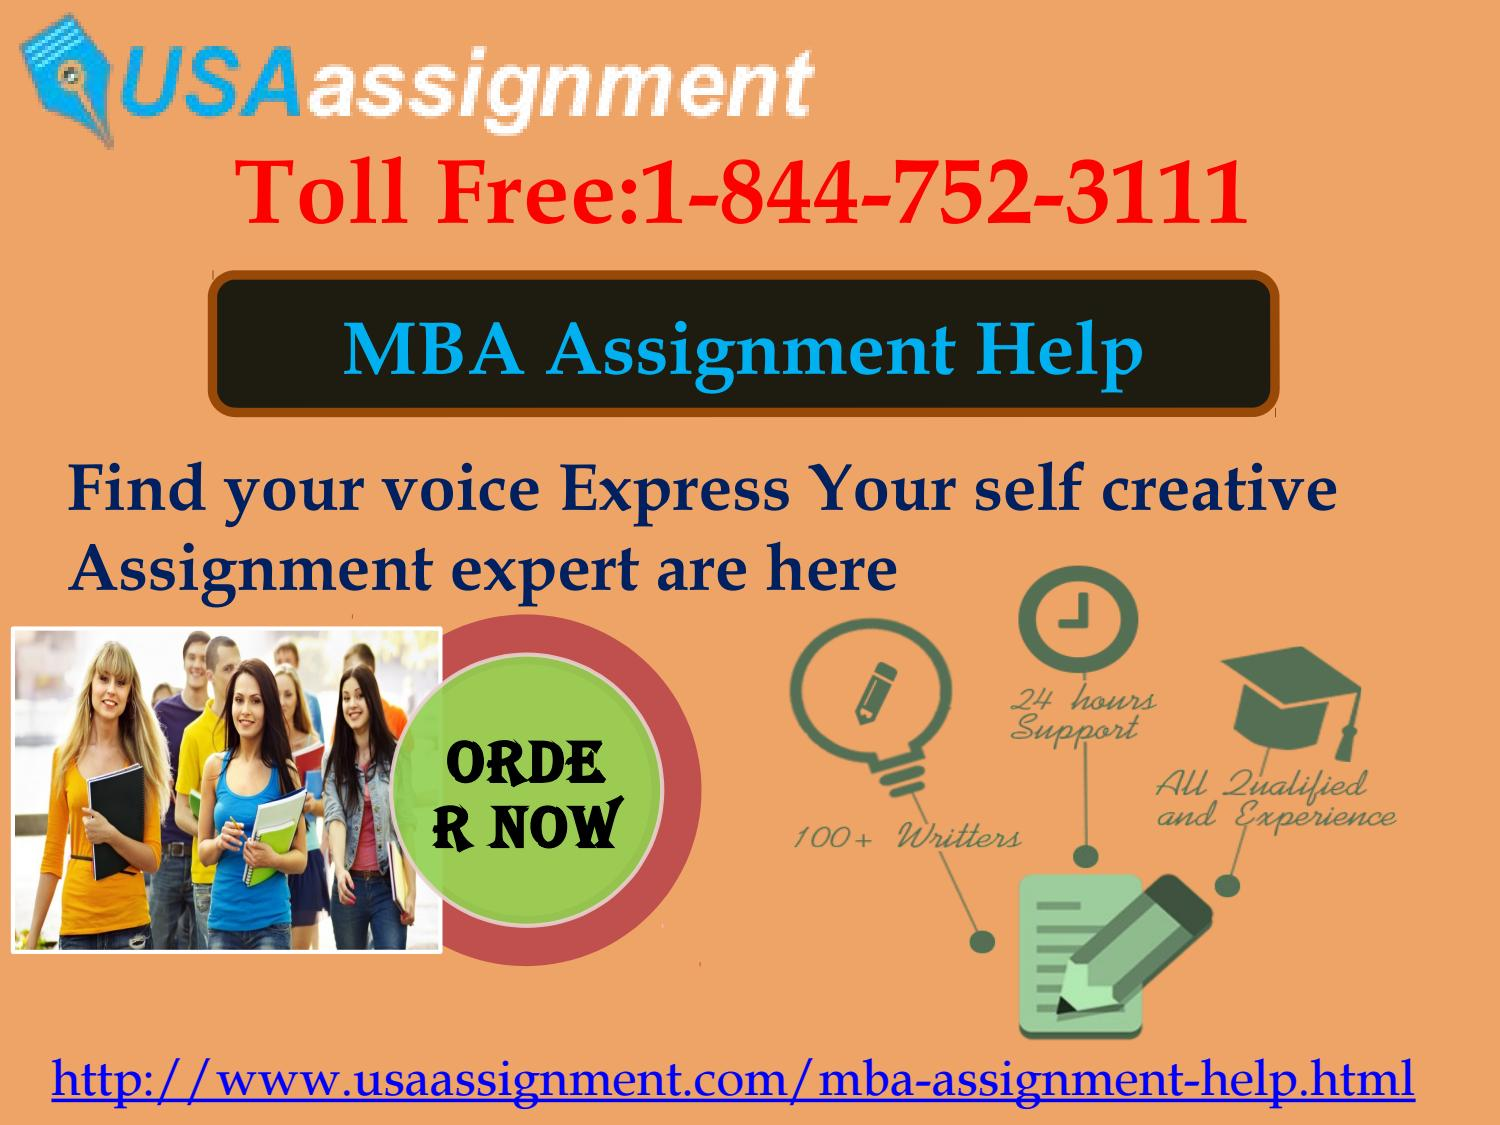 mba assignment helper Get upto 50% off on online assignment writing services in australia get the best assignment help for your college projects from instantassignmenthelpcomau.